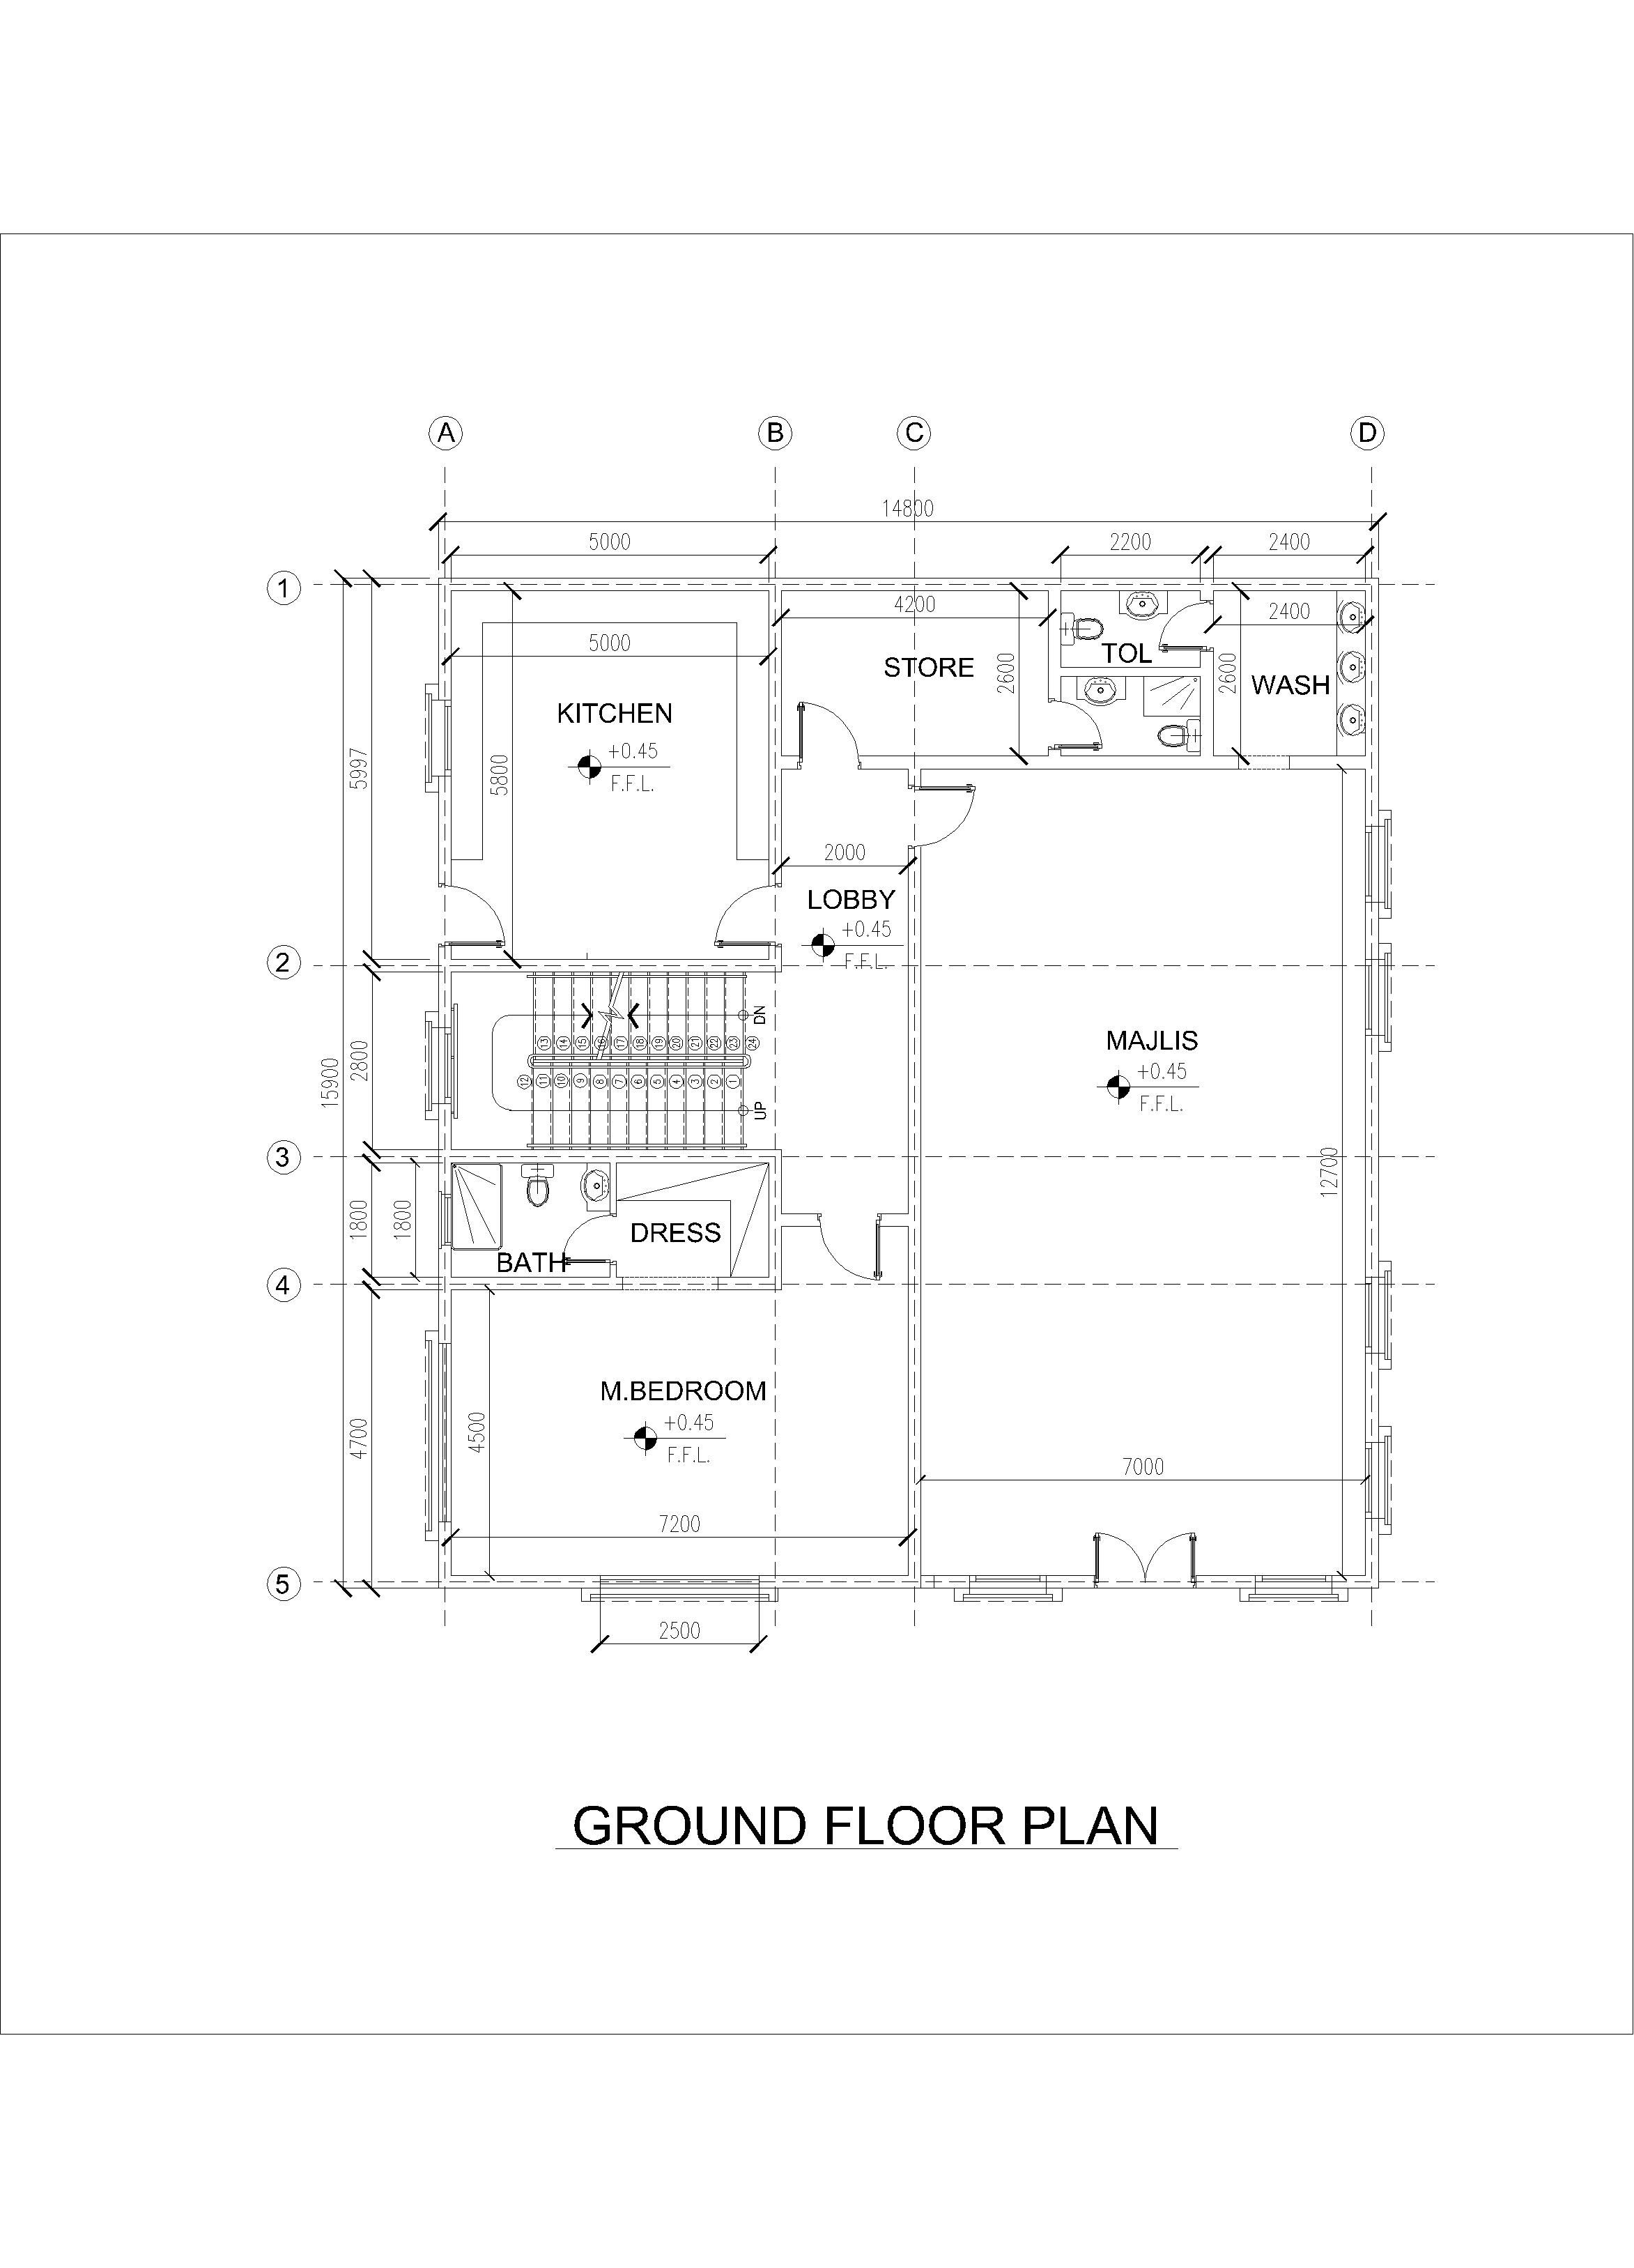 Malikluqman490 I Will Create Professional Plans For Your Business For 5 On Fiverr Com In 2020 Free House Plans Simple House Plans Model House Plan